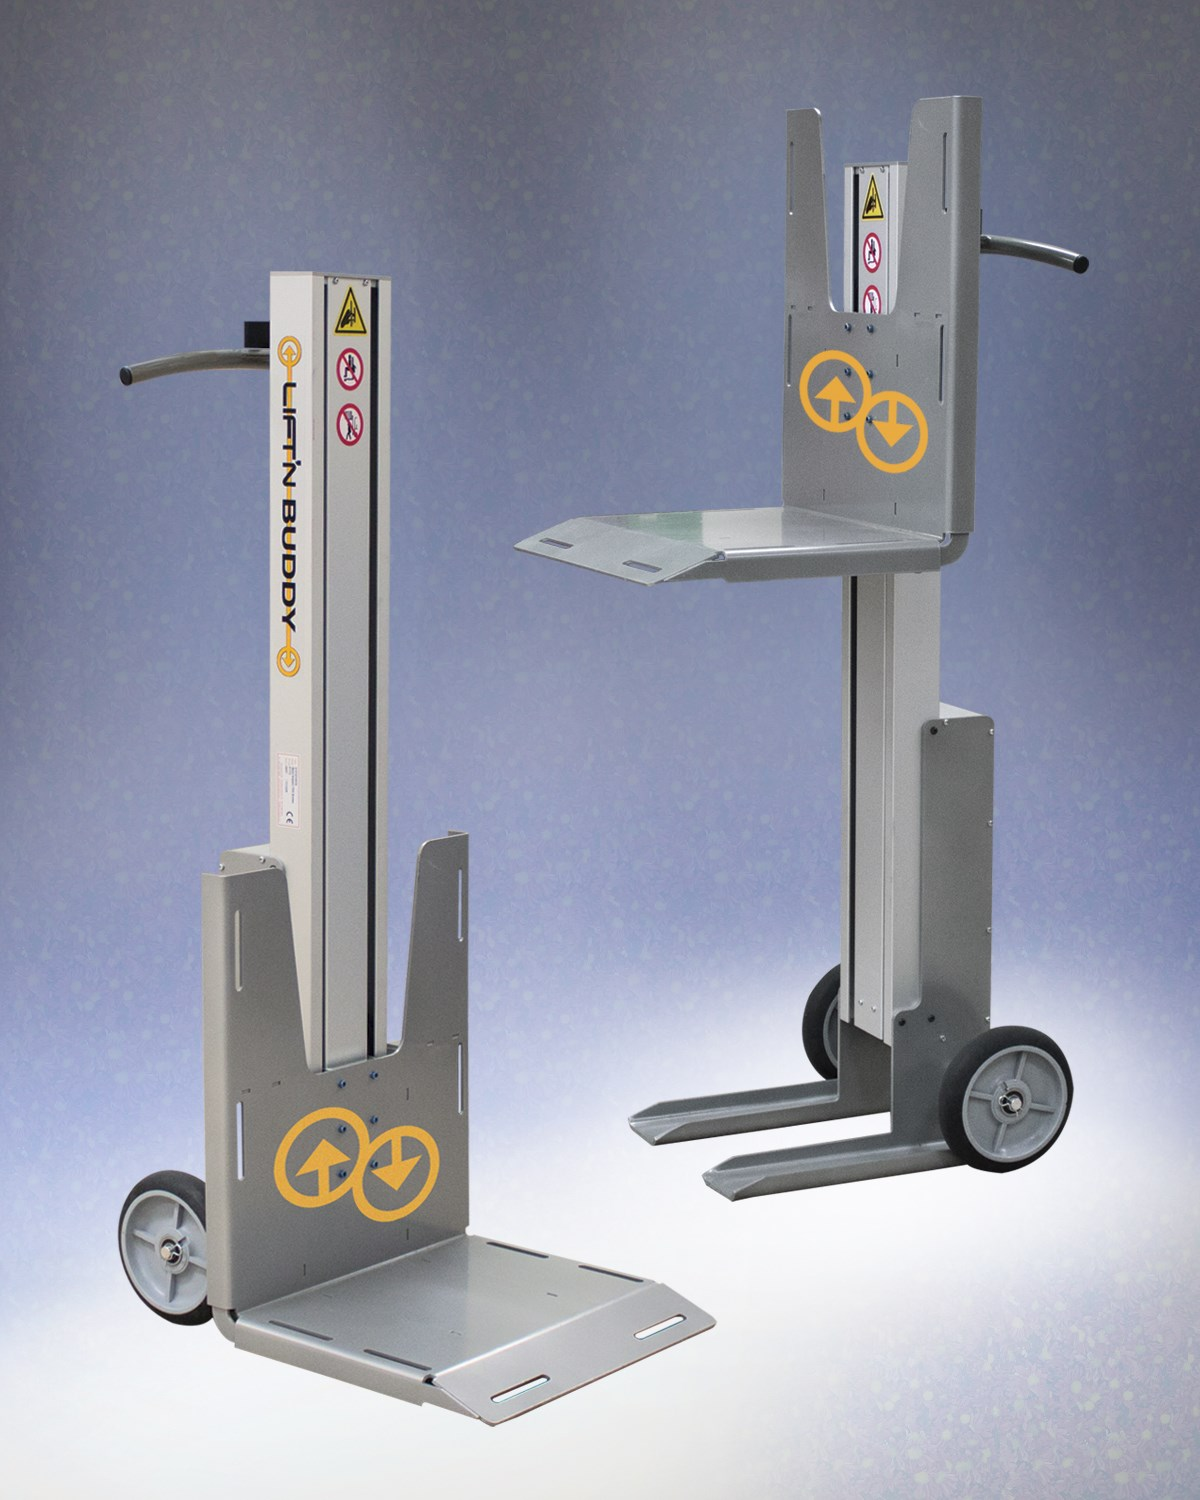 Lift'n Buddy releases lift help device